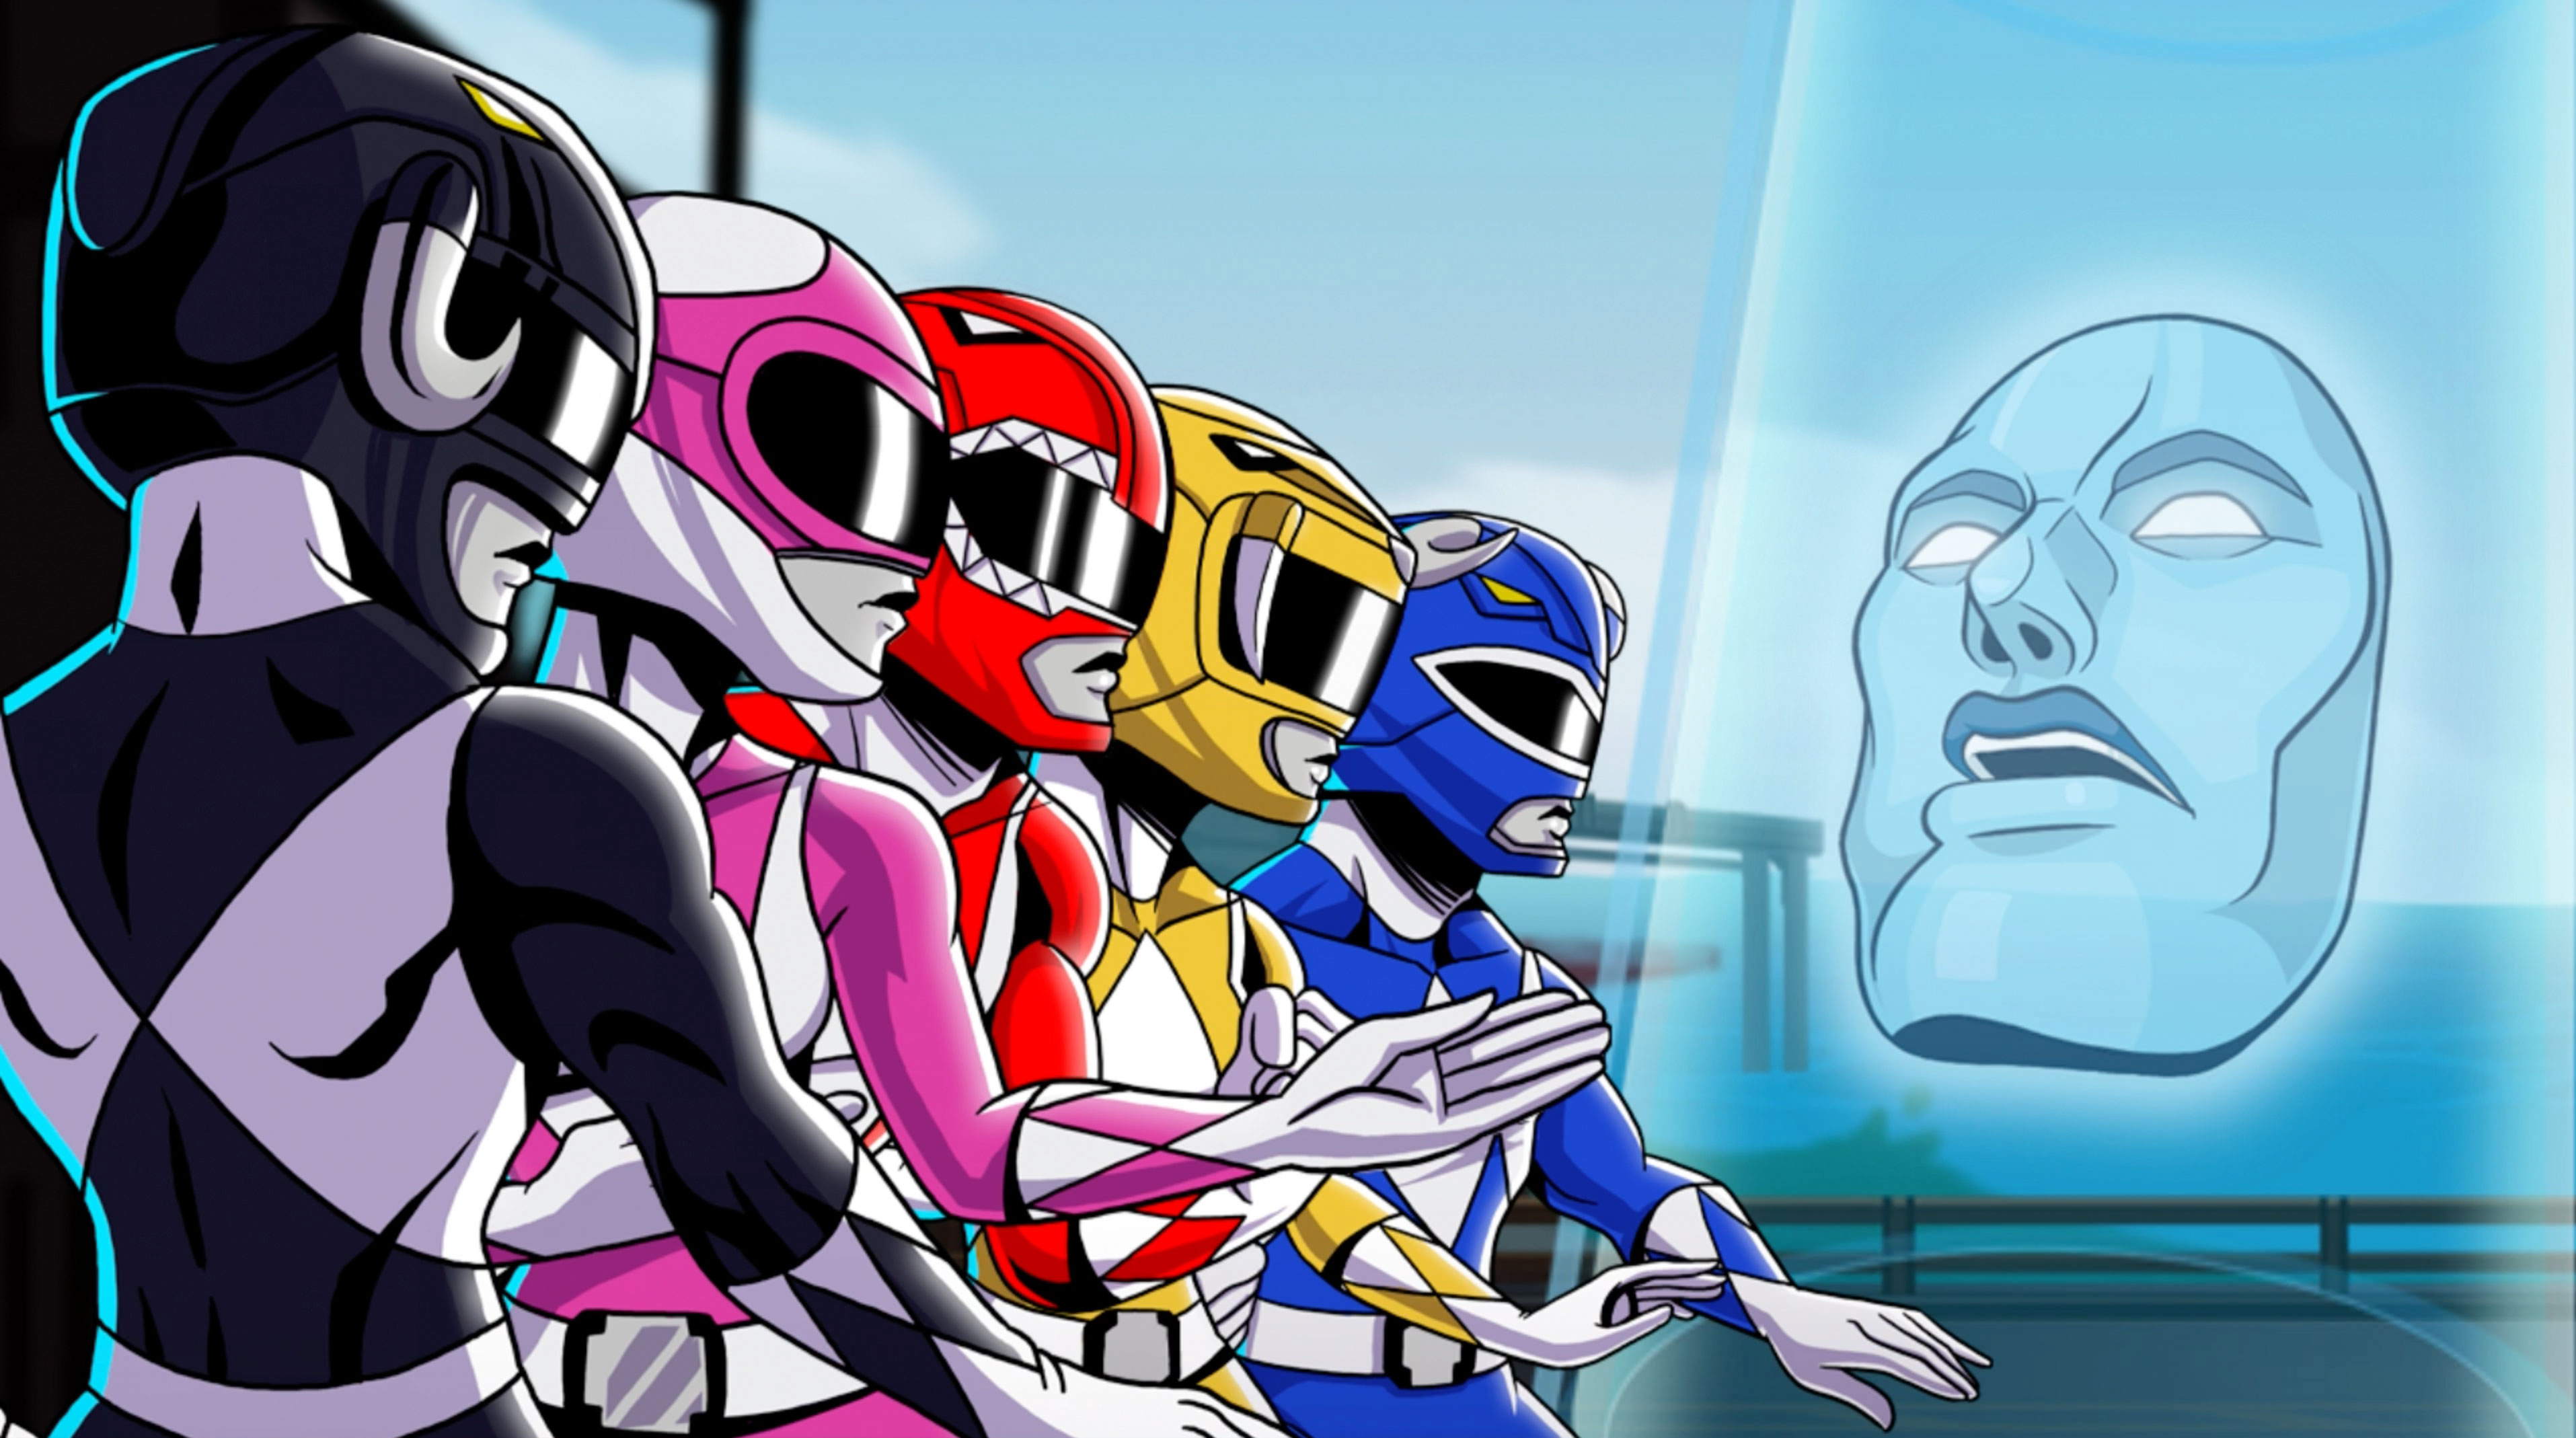 20161006_power-ranger_1